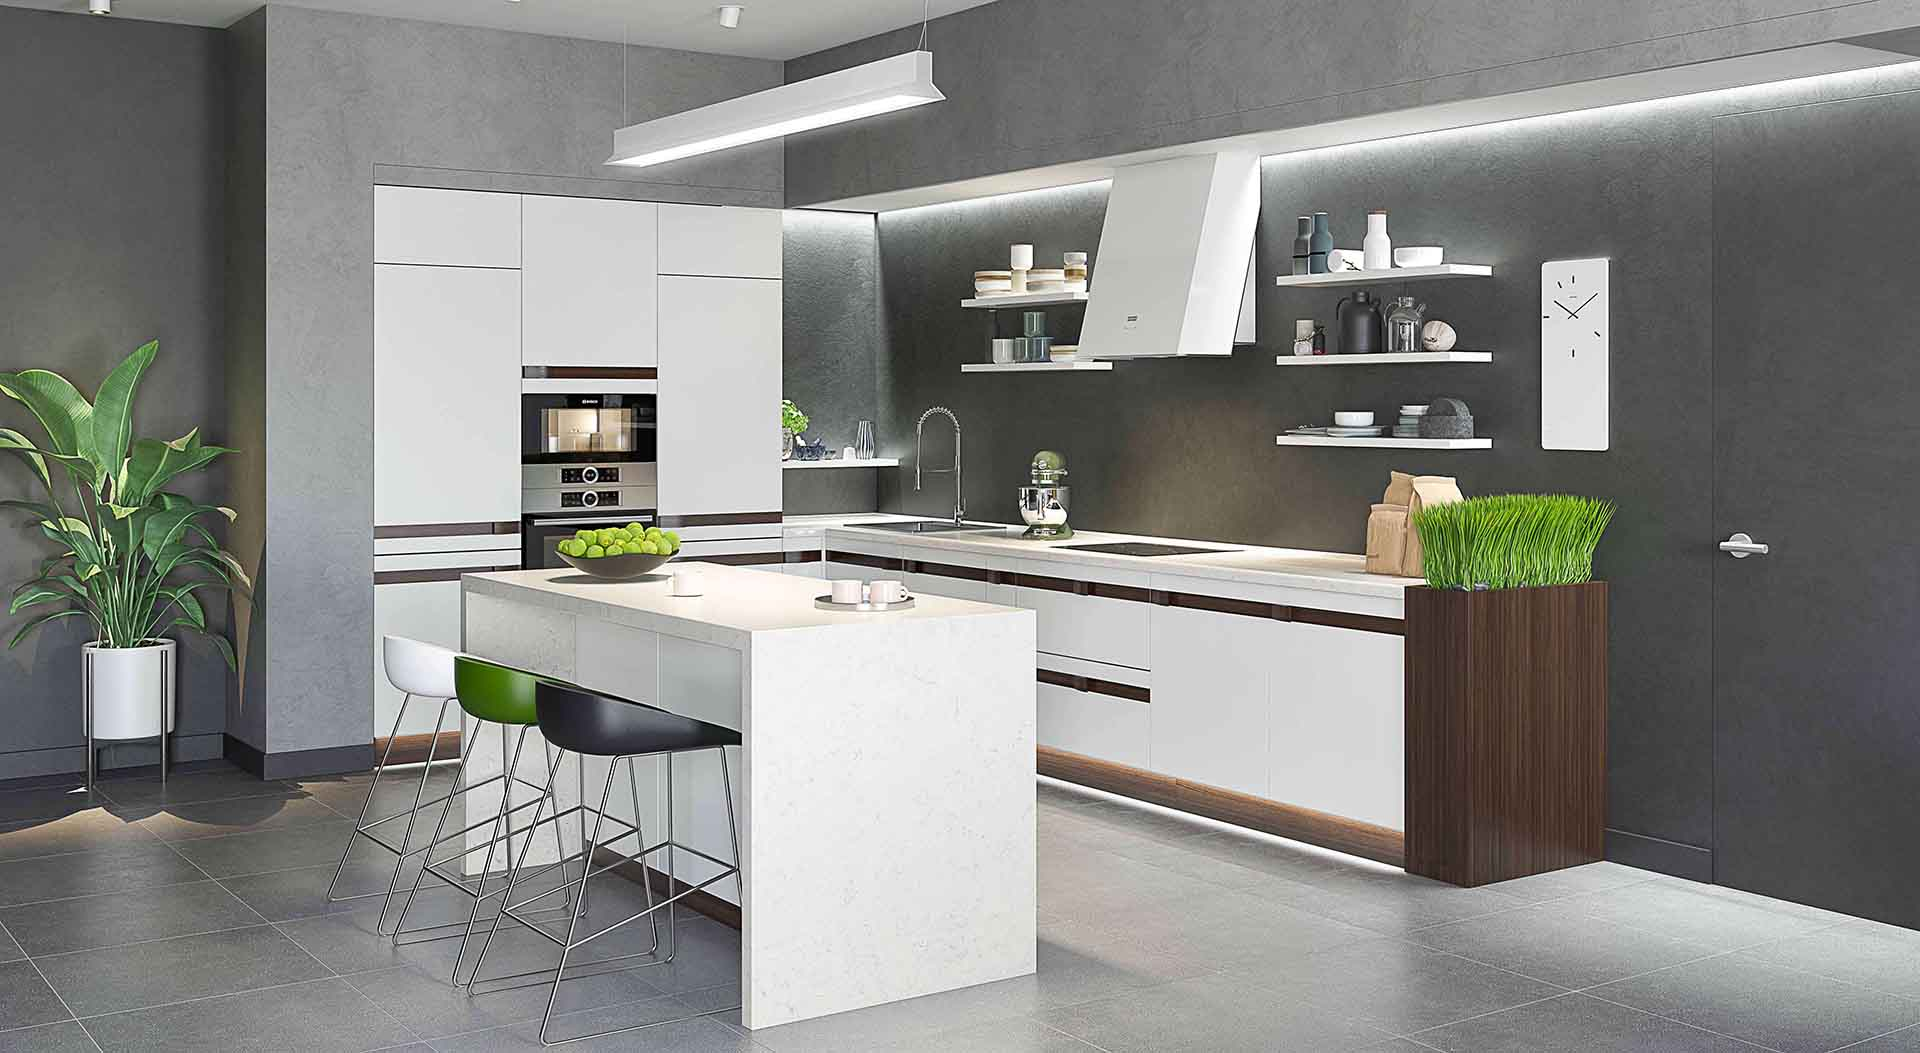 Product Rendering of a White Kitchen with Contrasting Elements